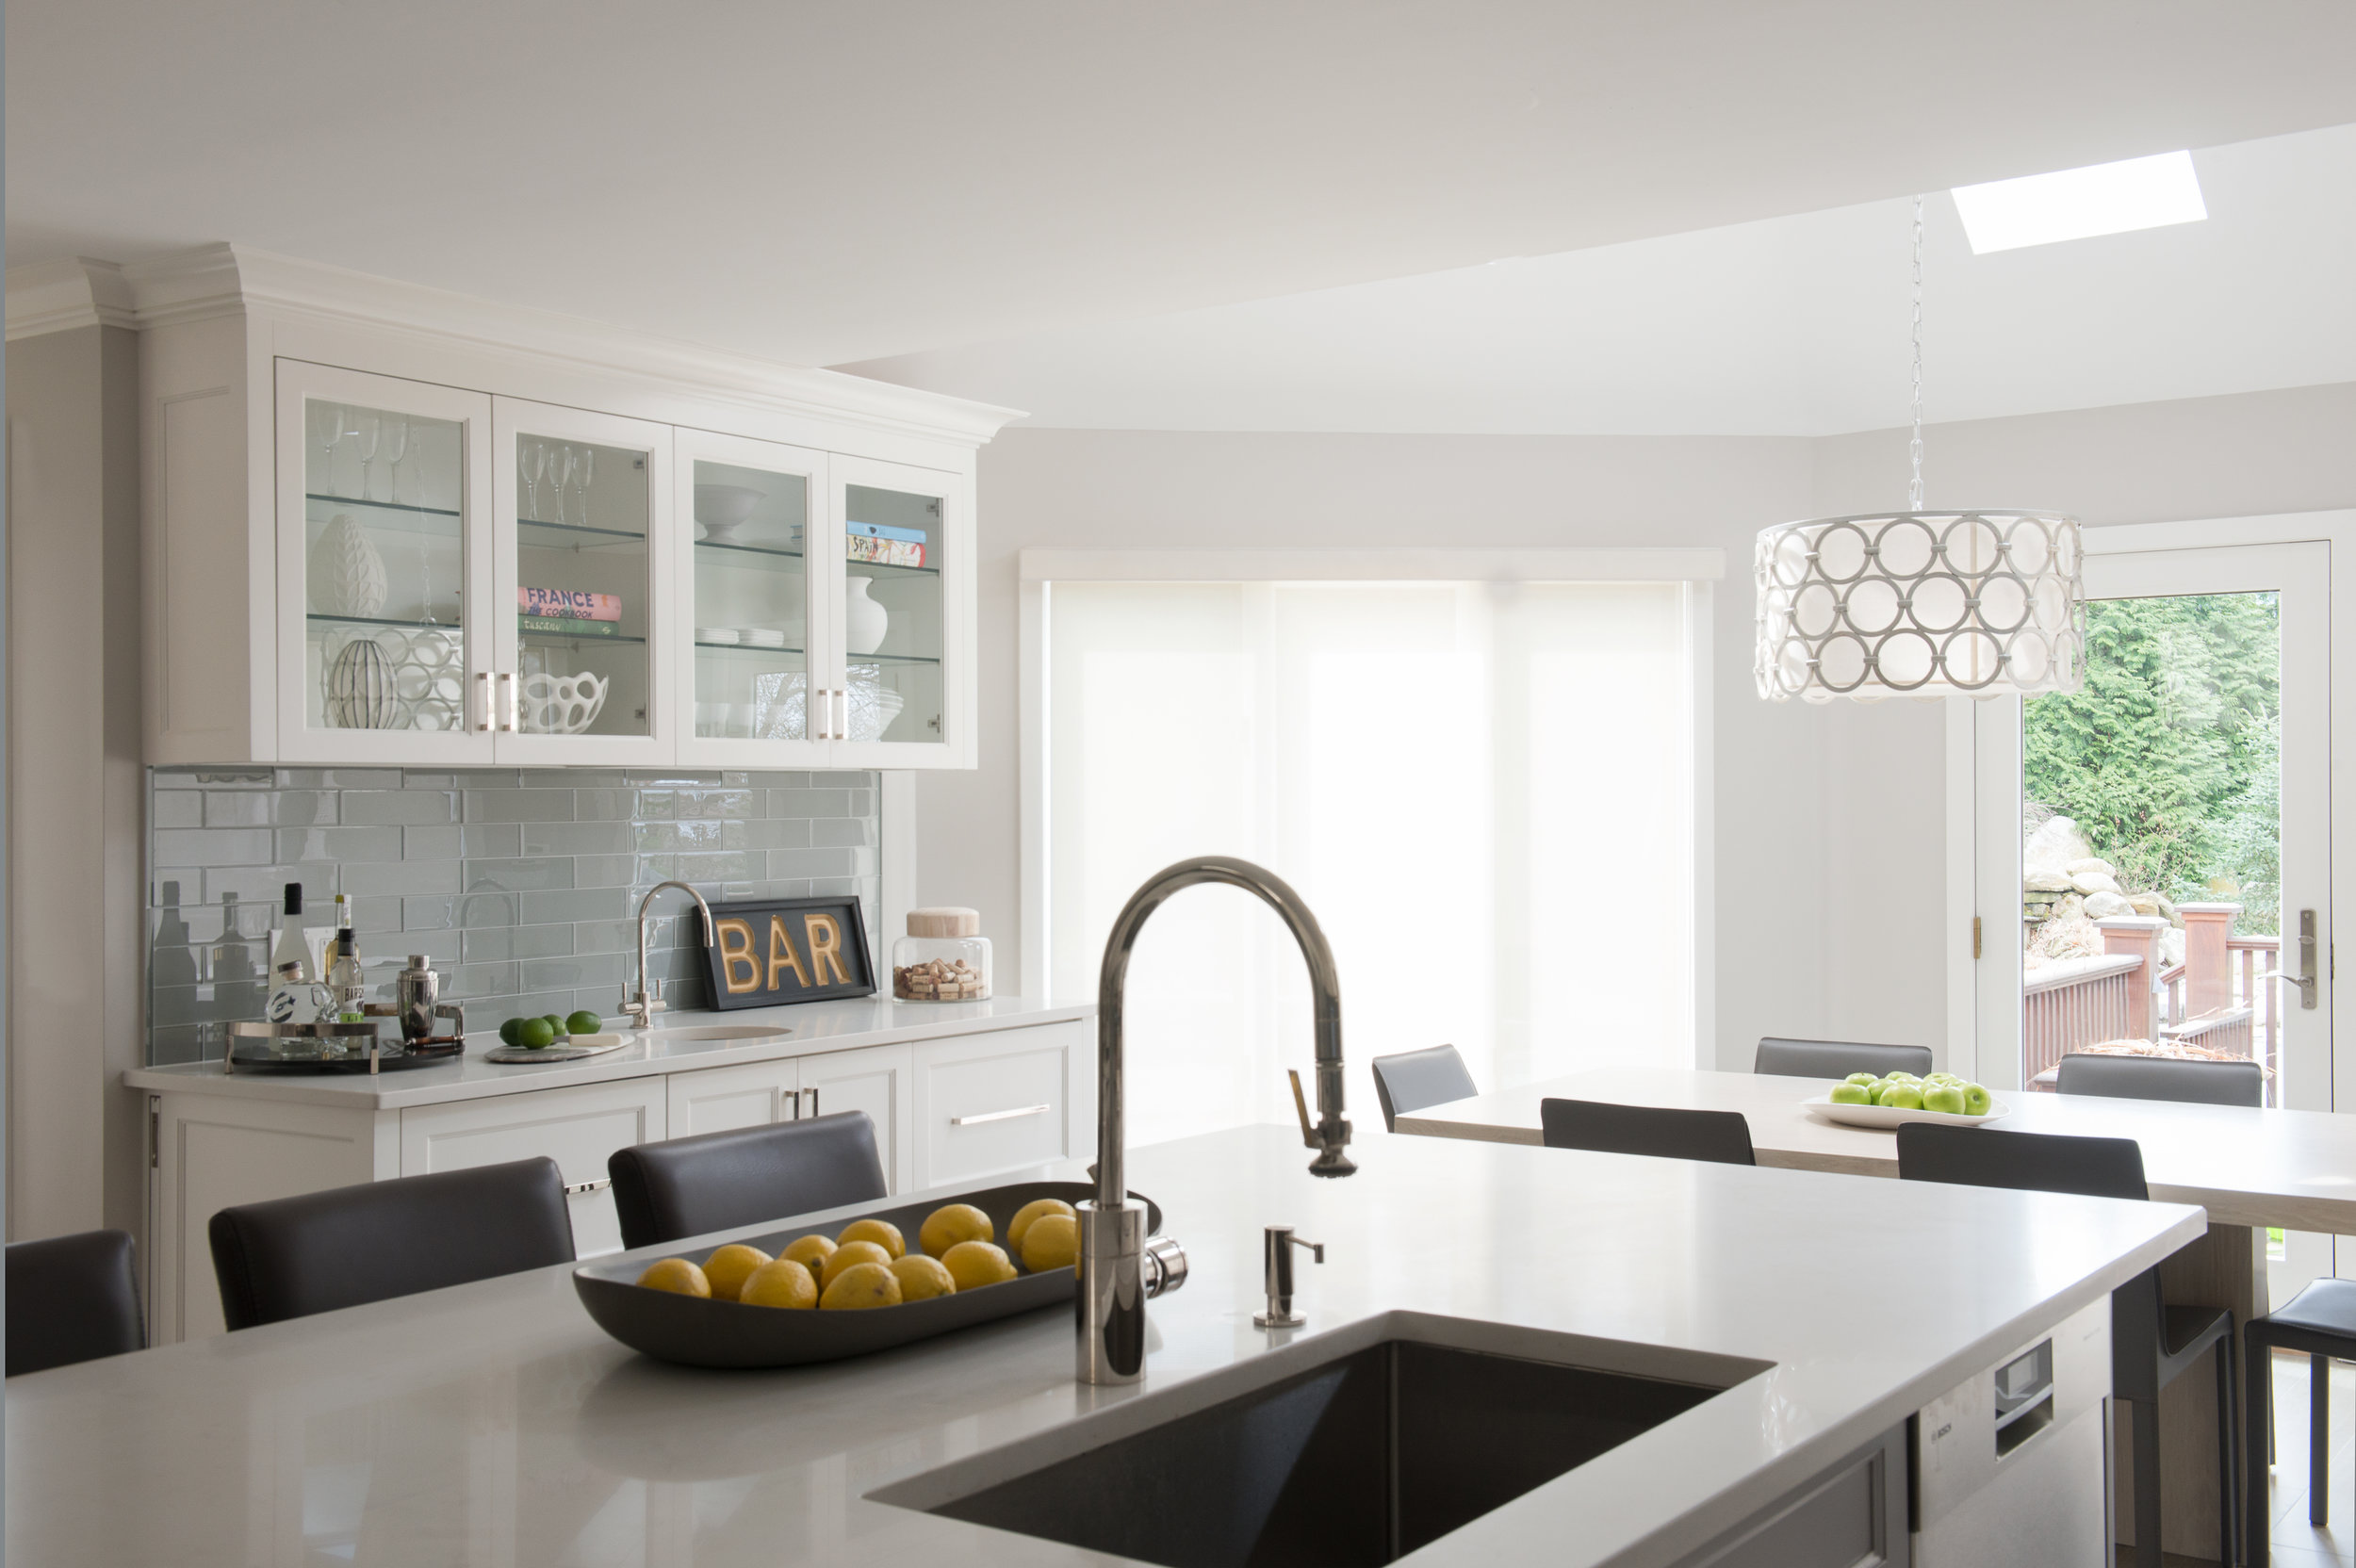 KITCHEN ISLAND AND GLASS CABINETS